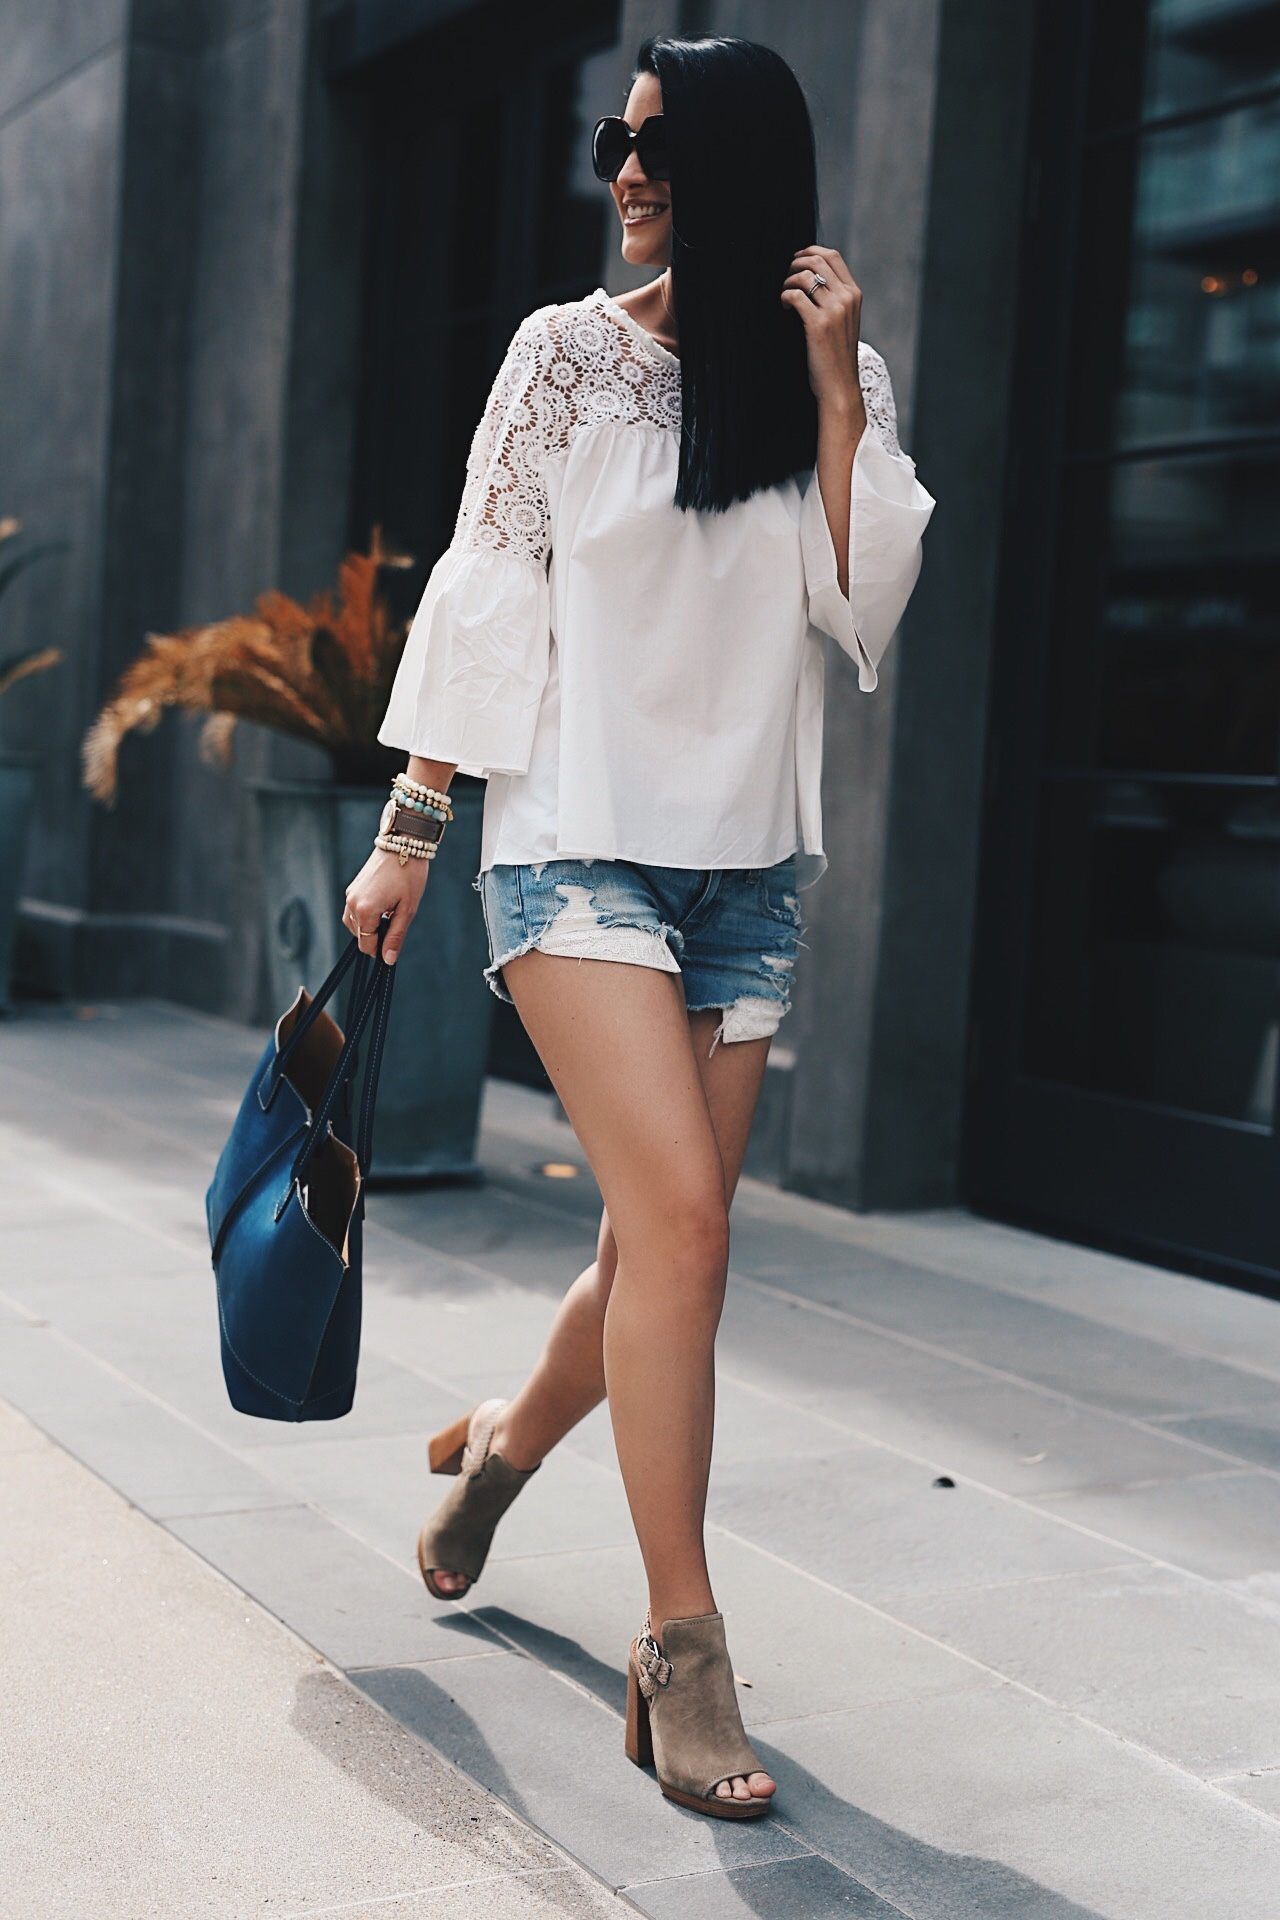 White Crochet Blouse featured by top US fashion blog Dressed to Kill; Image of a woman wearing Chicwish top, American eagle cut off shorts, Frye shoes and tote.